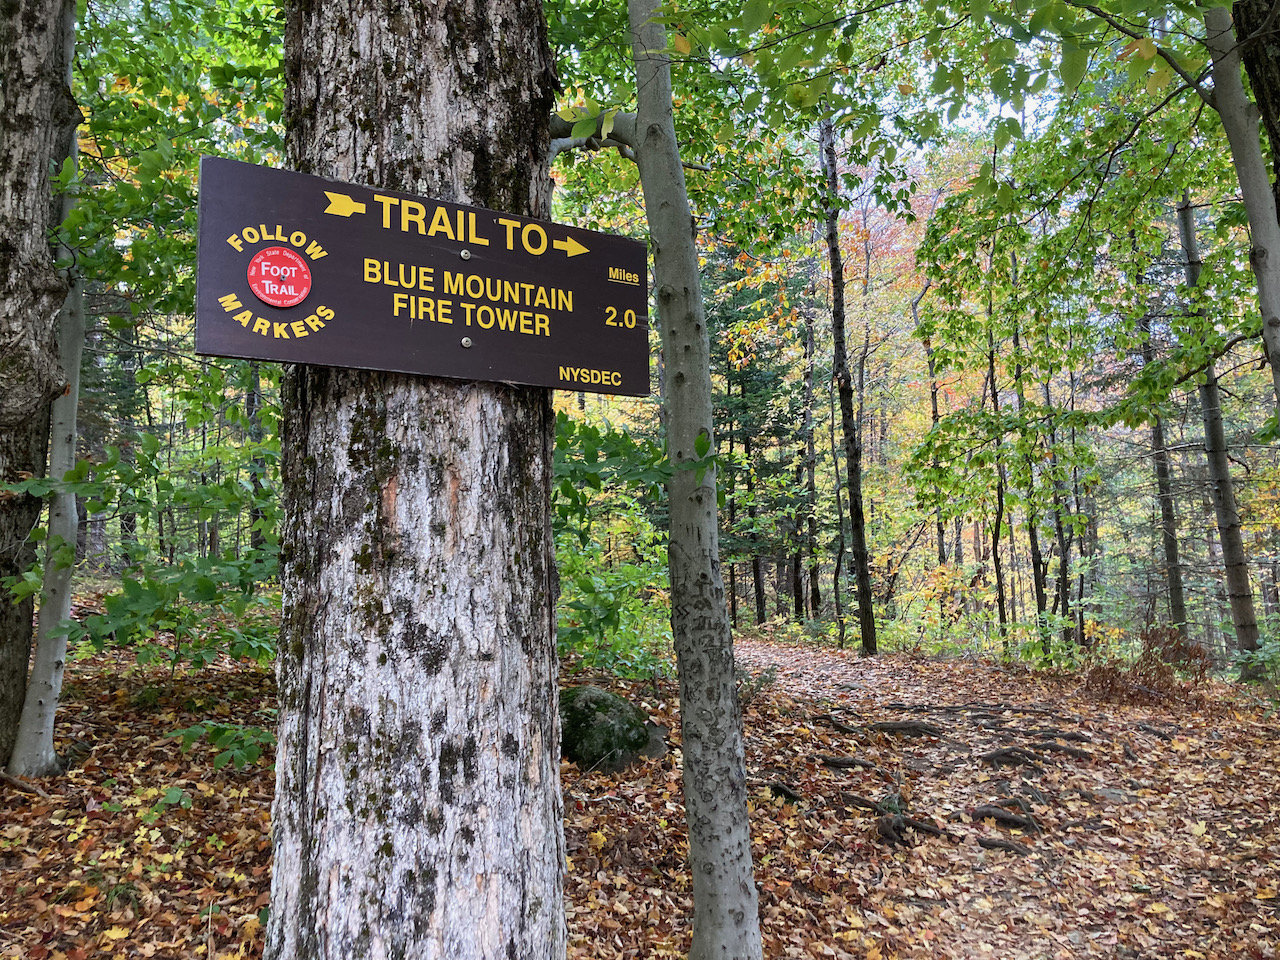 Trail marker that reads TRAIL TO BLUE MOUNTAIN FIRE TOWER 2.0 MILES.